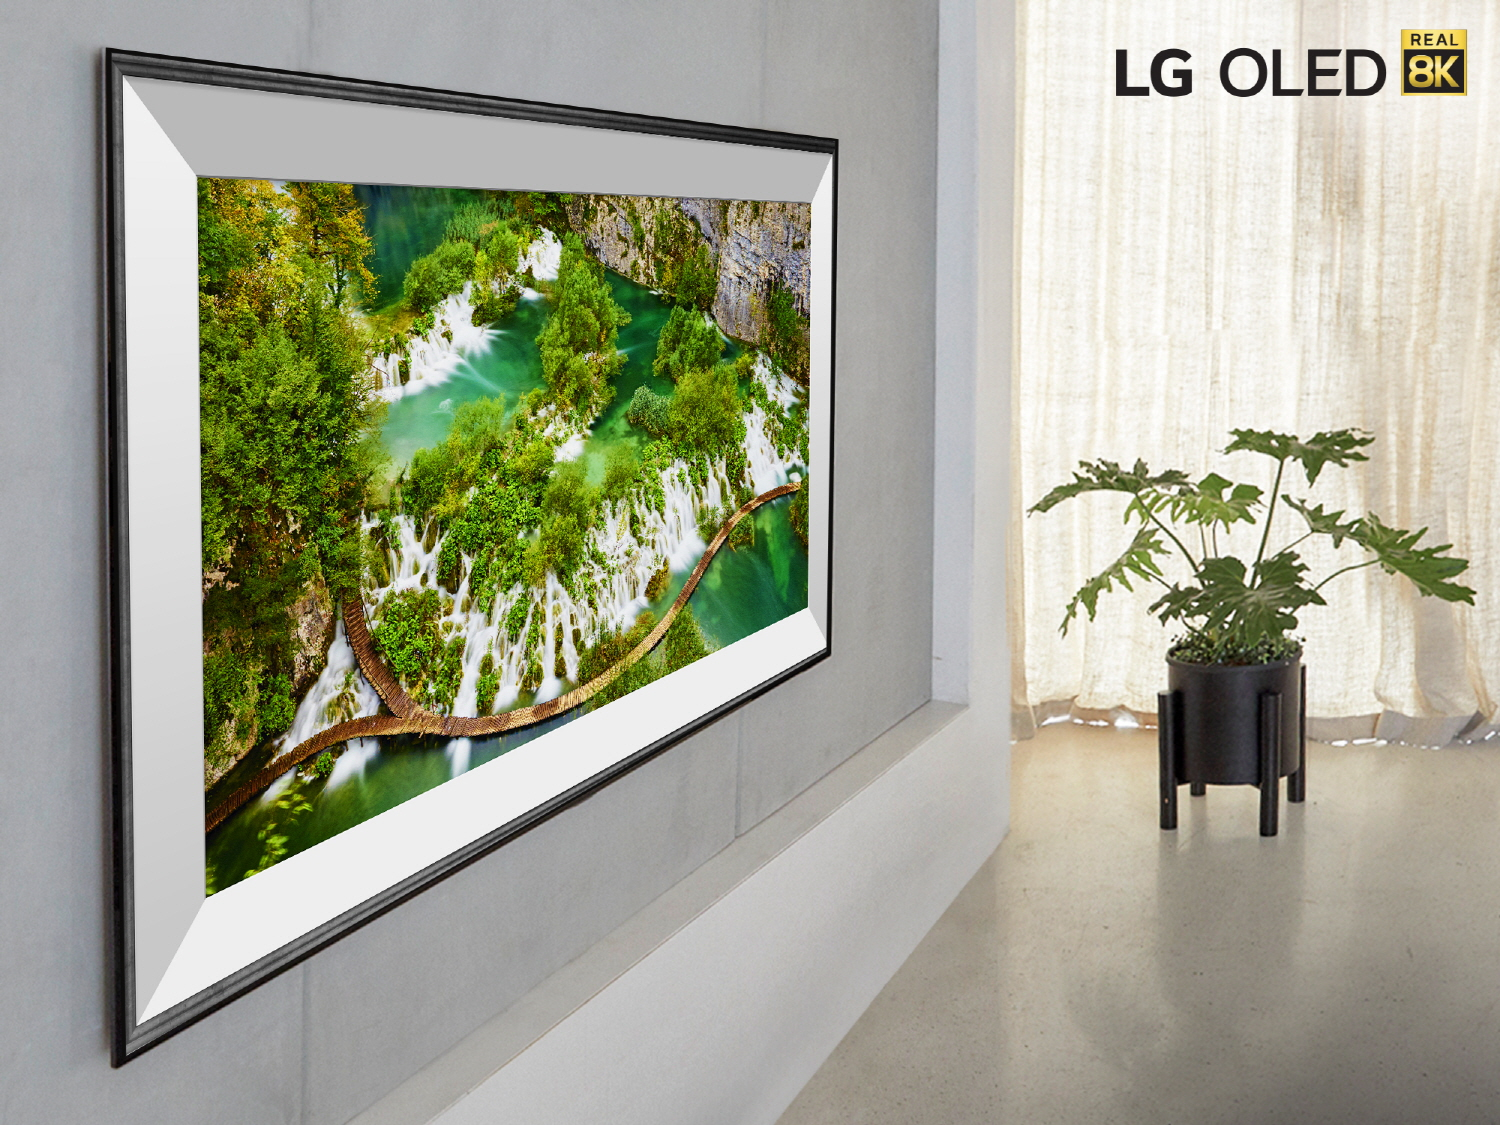 LG and Samsung TVs at CES: Bezel-free